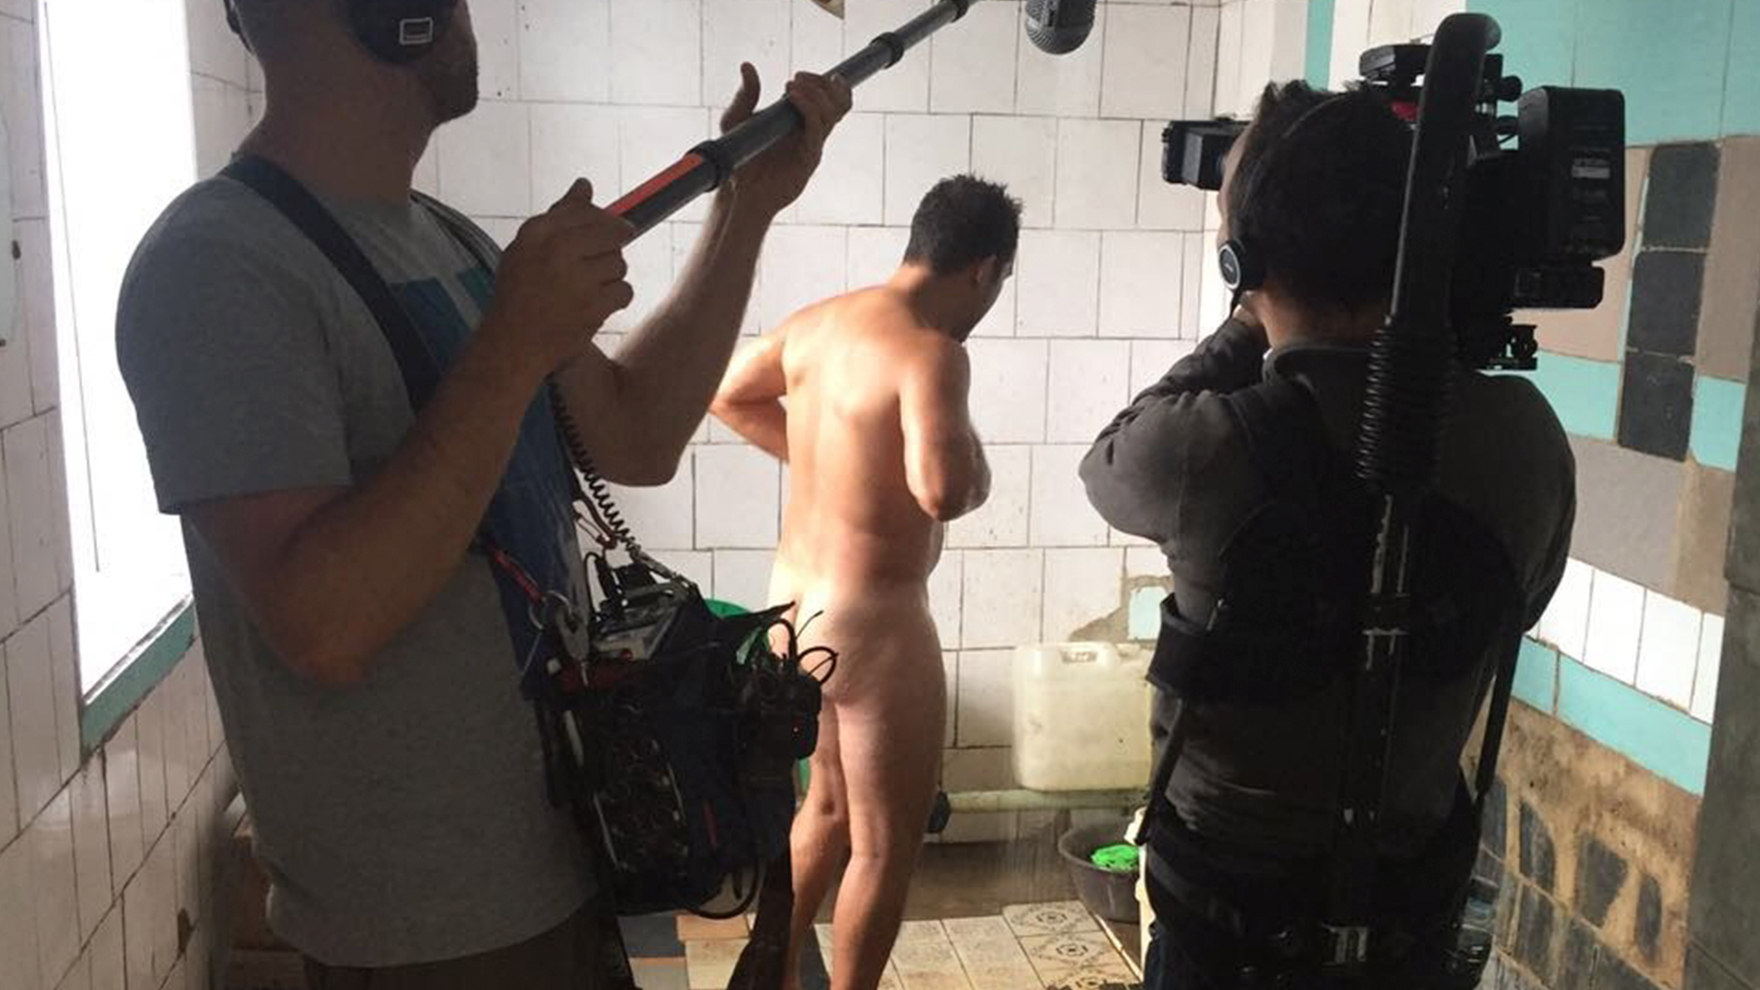 RR-takes-cold-shower-in-Ukraine-Prison